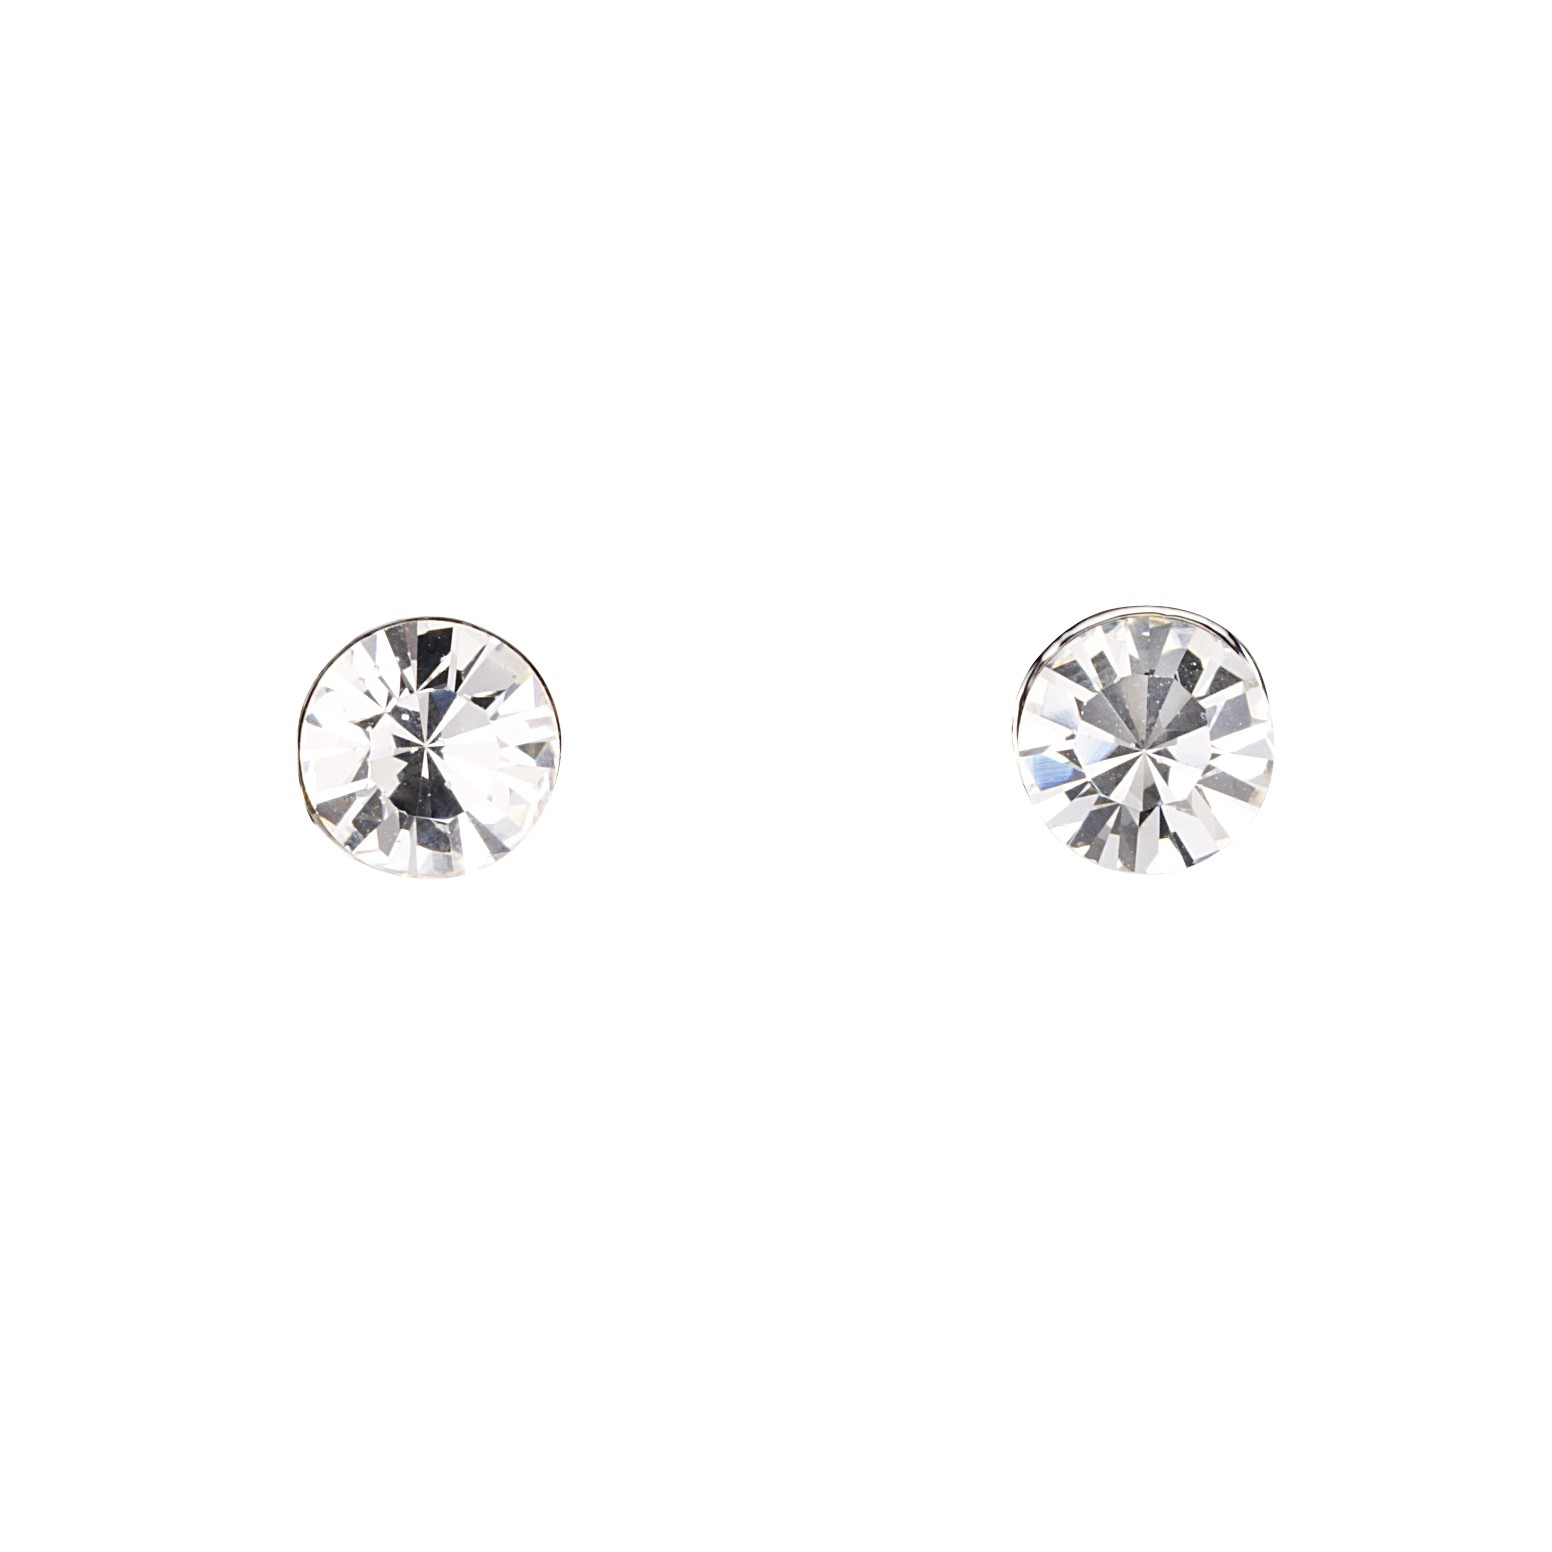 jewellery women swarovski white image creativity earrings crystal greed john spiral